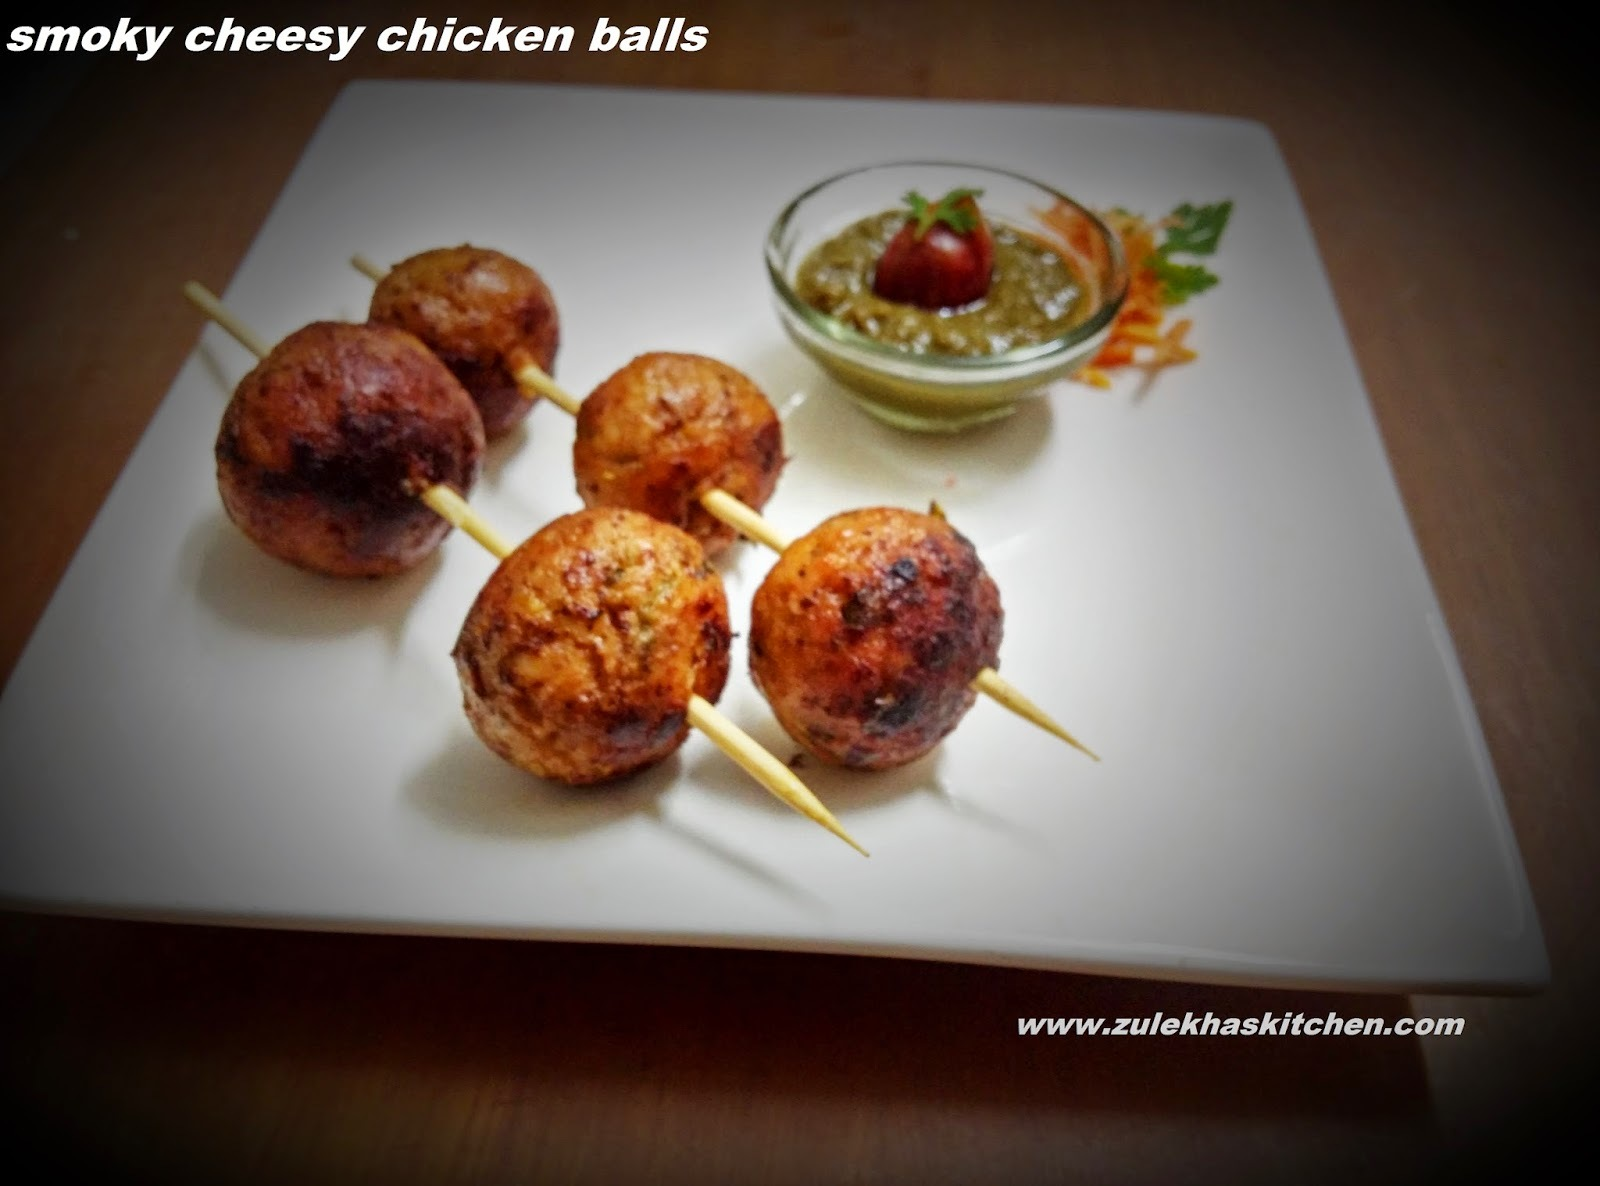 Recipe of smokey cheesy chicken balls